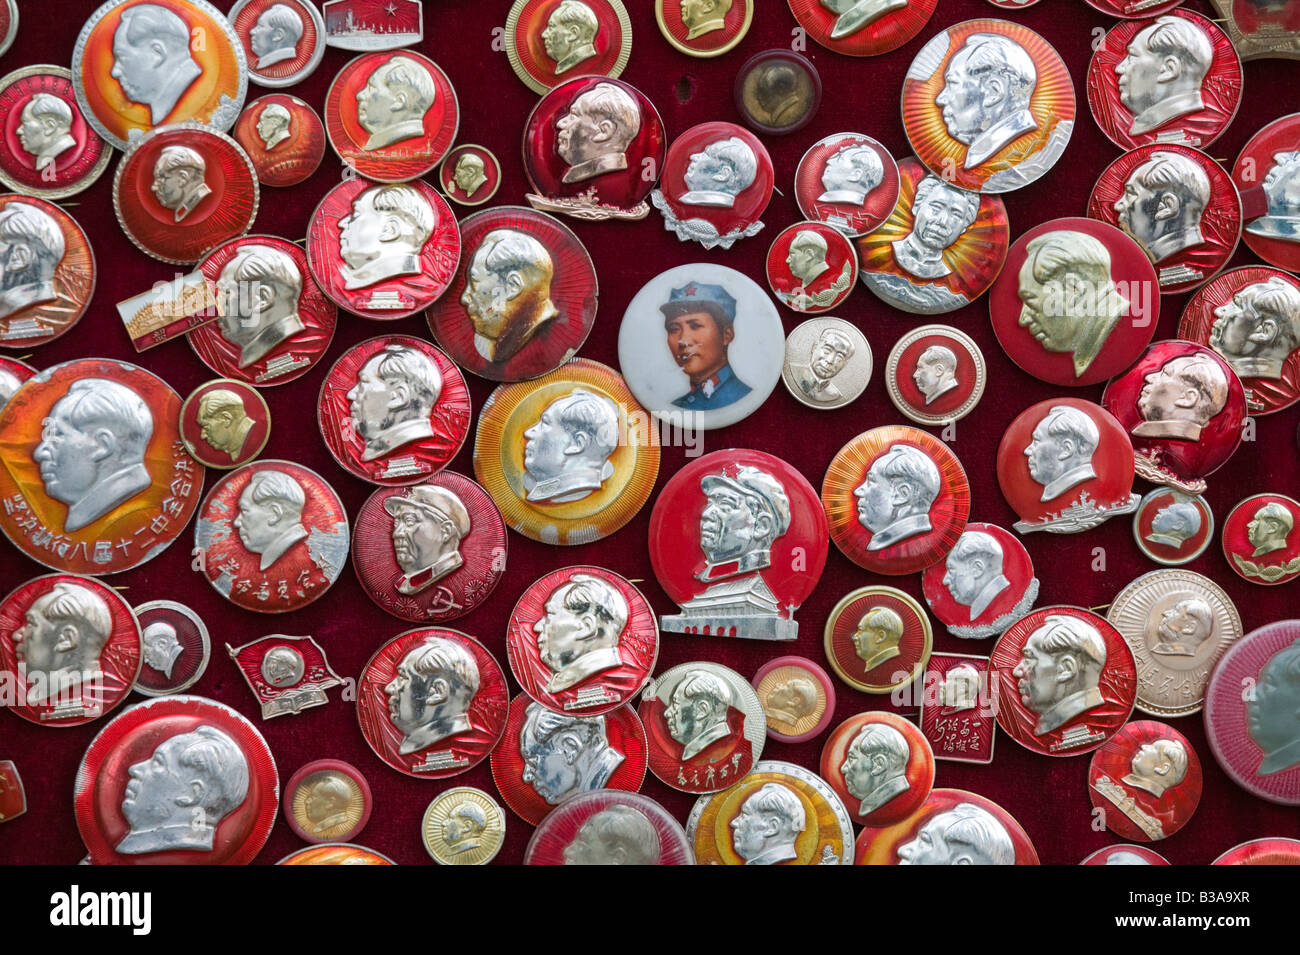 China, Beijing, Xuanwu District, Liulichang Xijie, Beijing's Antiques Street, Collectible Chairman Mao pins - Stock Image